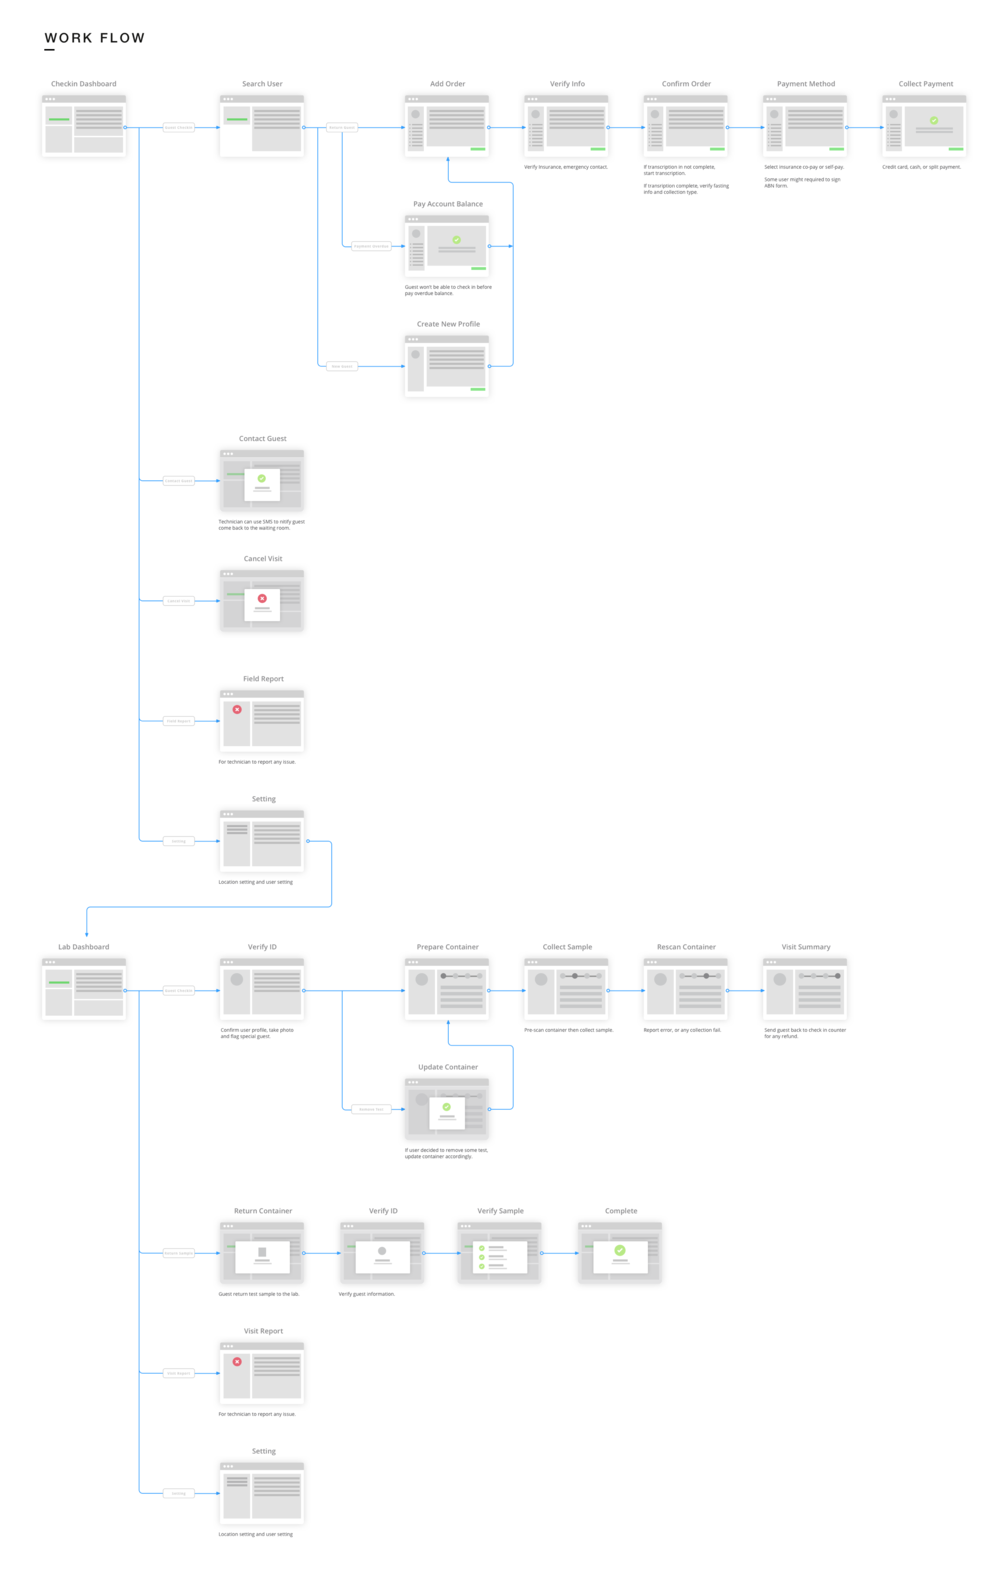 PSC flow chart.png